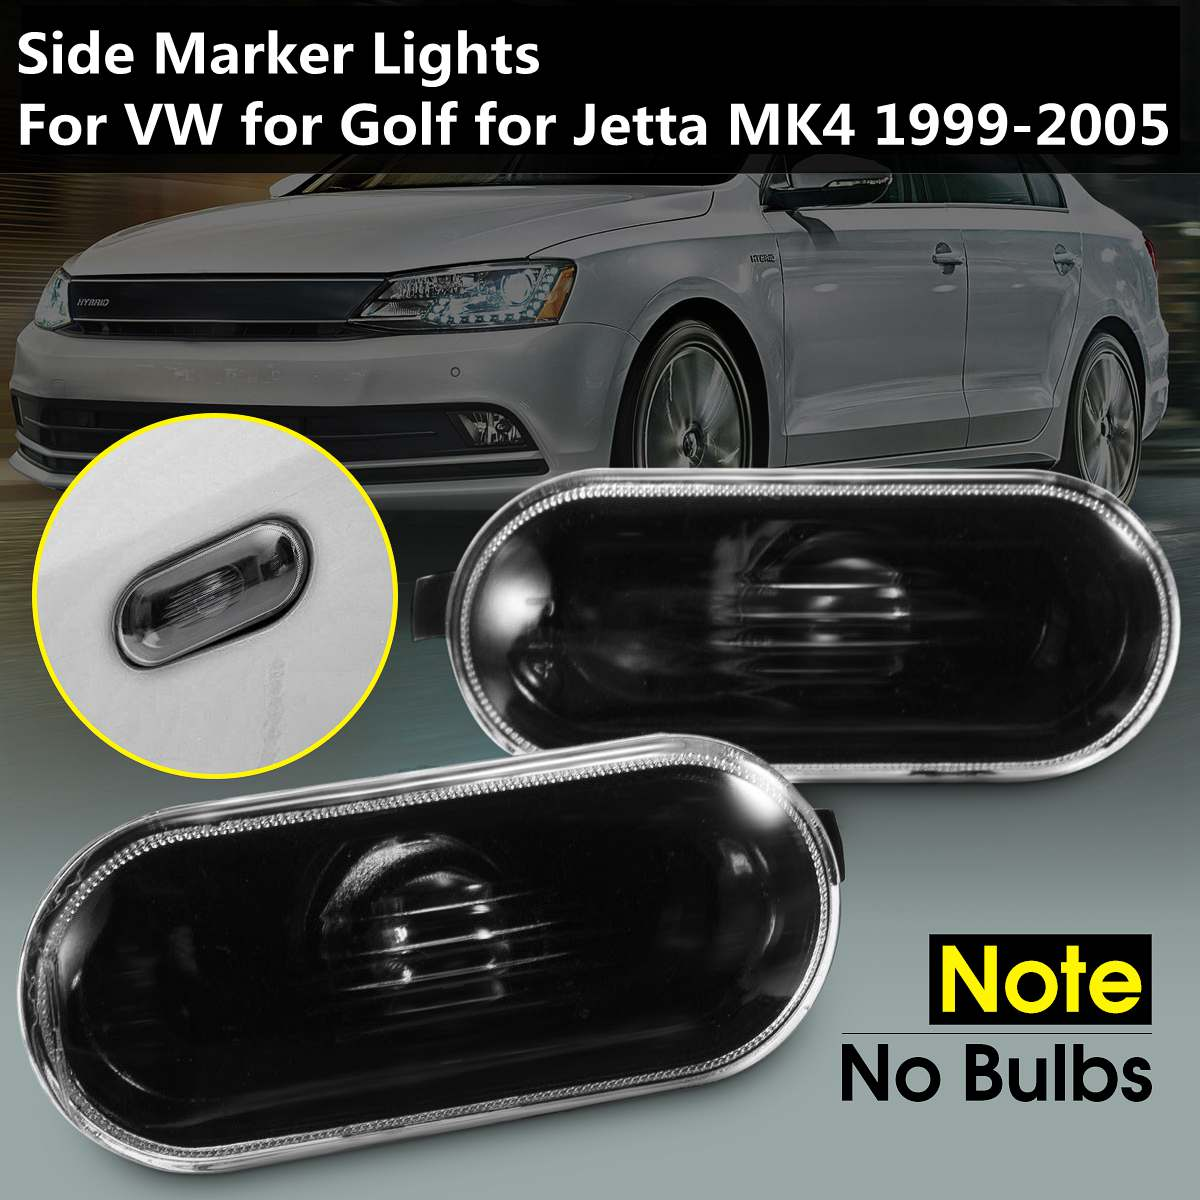 Pair Of Left Right New Black Side Marker Lights Lamp NO Bulbs For VW For Volkswagen Passat 1997-2004 Golf For Jetta MK4 1999-200